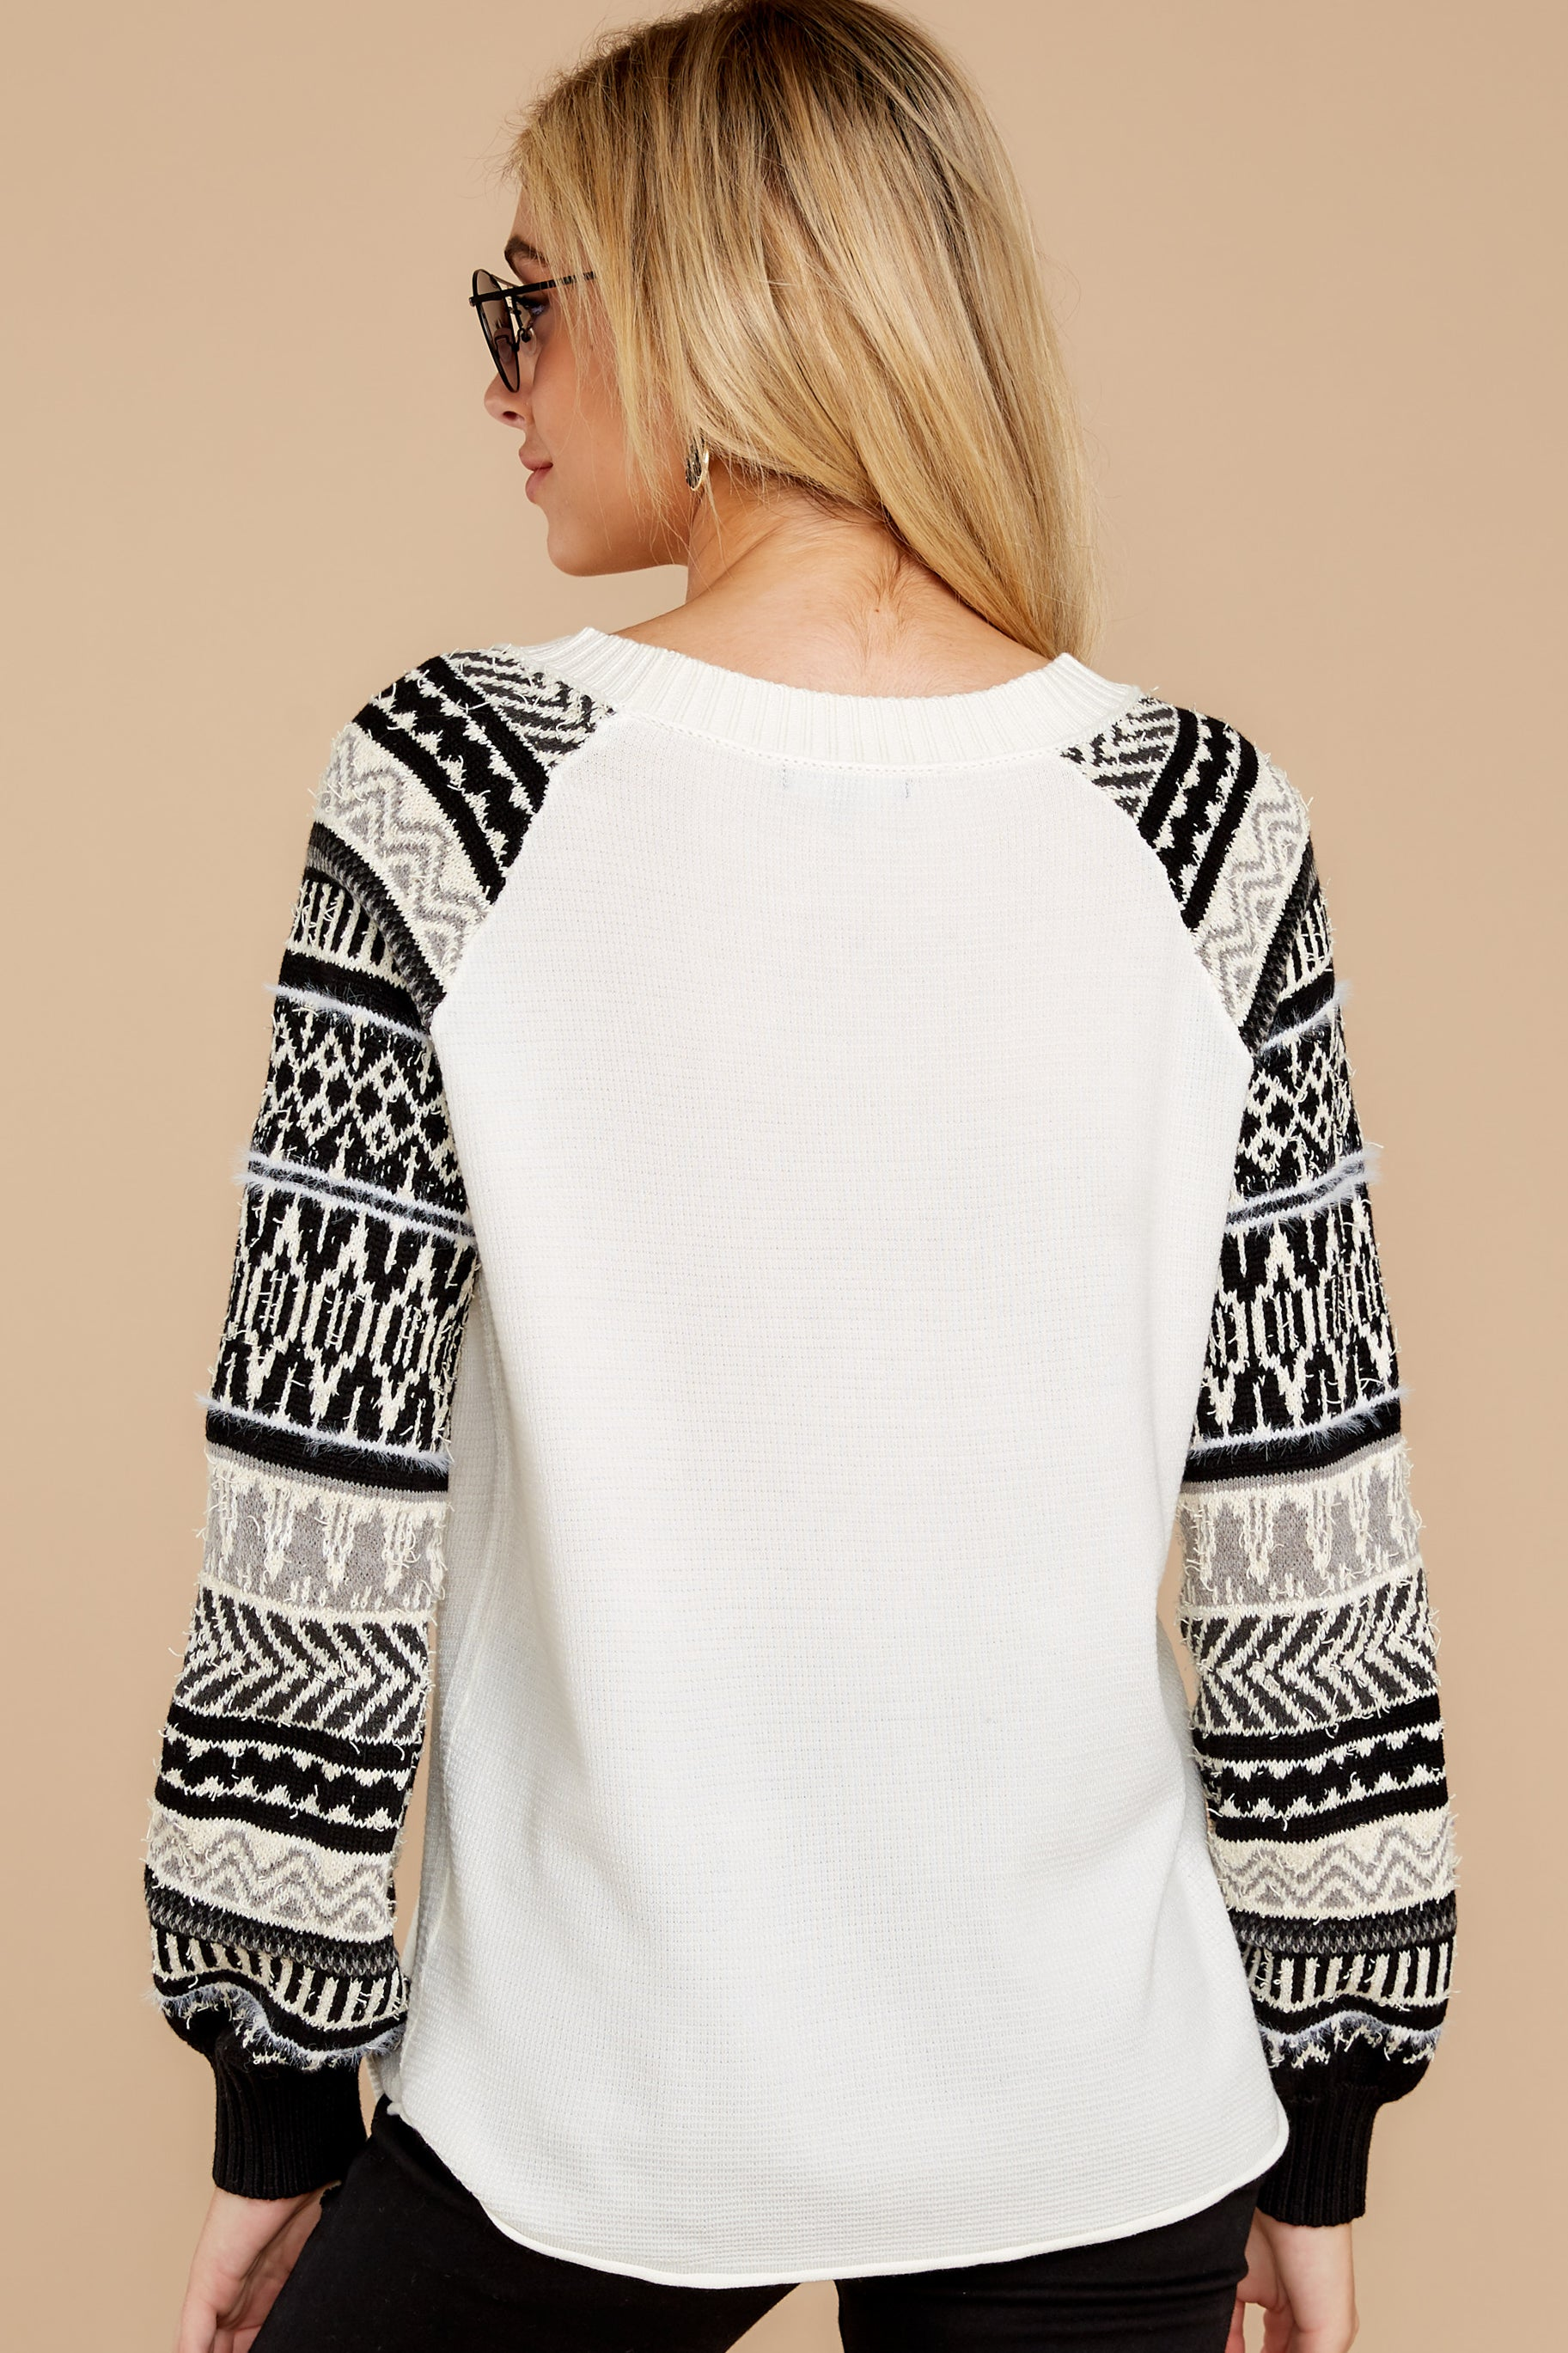 9 Never Settle Black And White Sweater at reddress.com